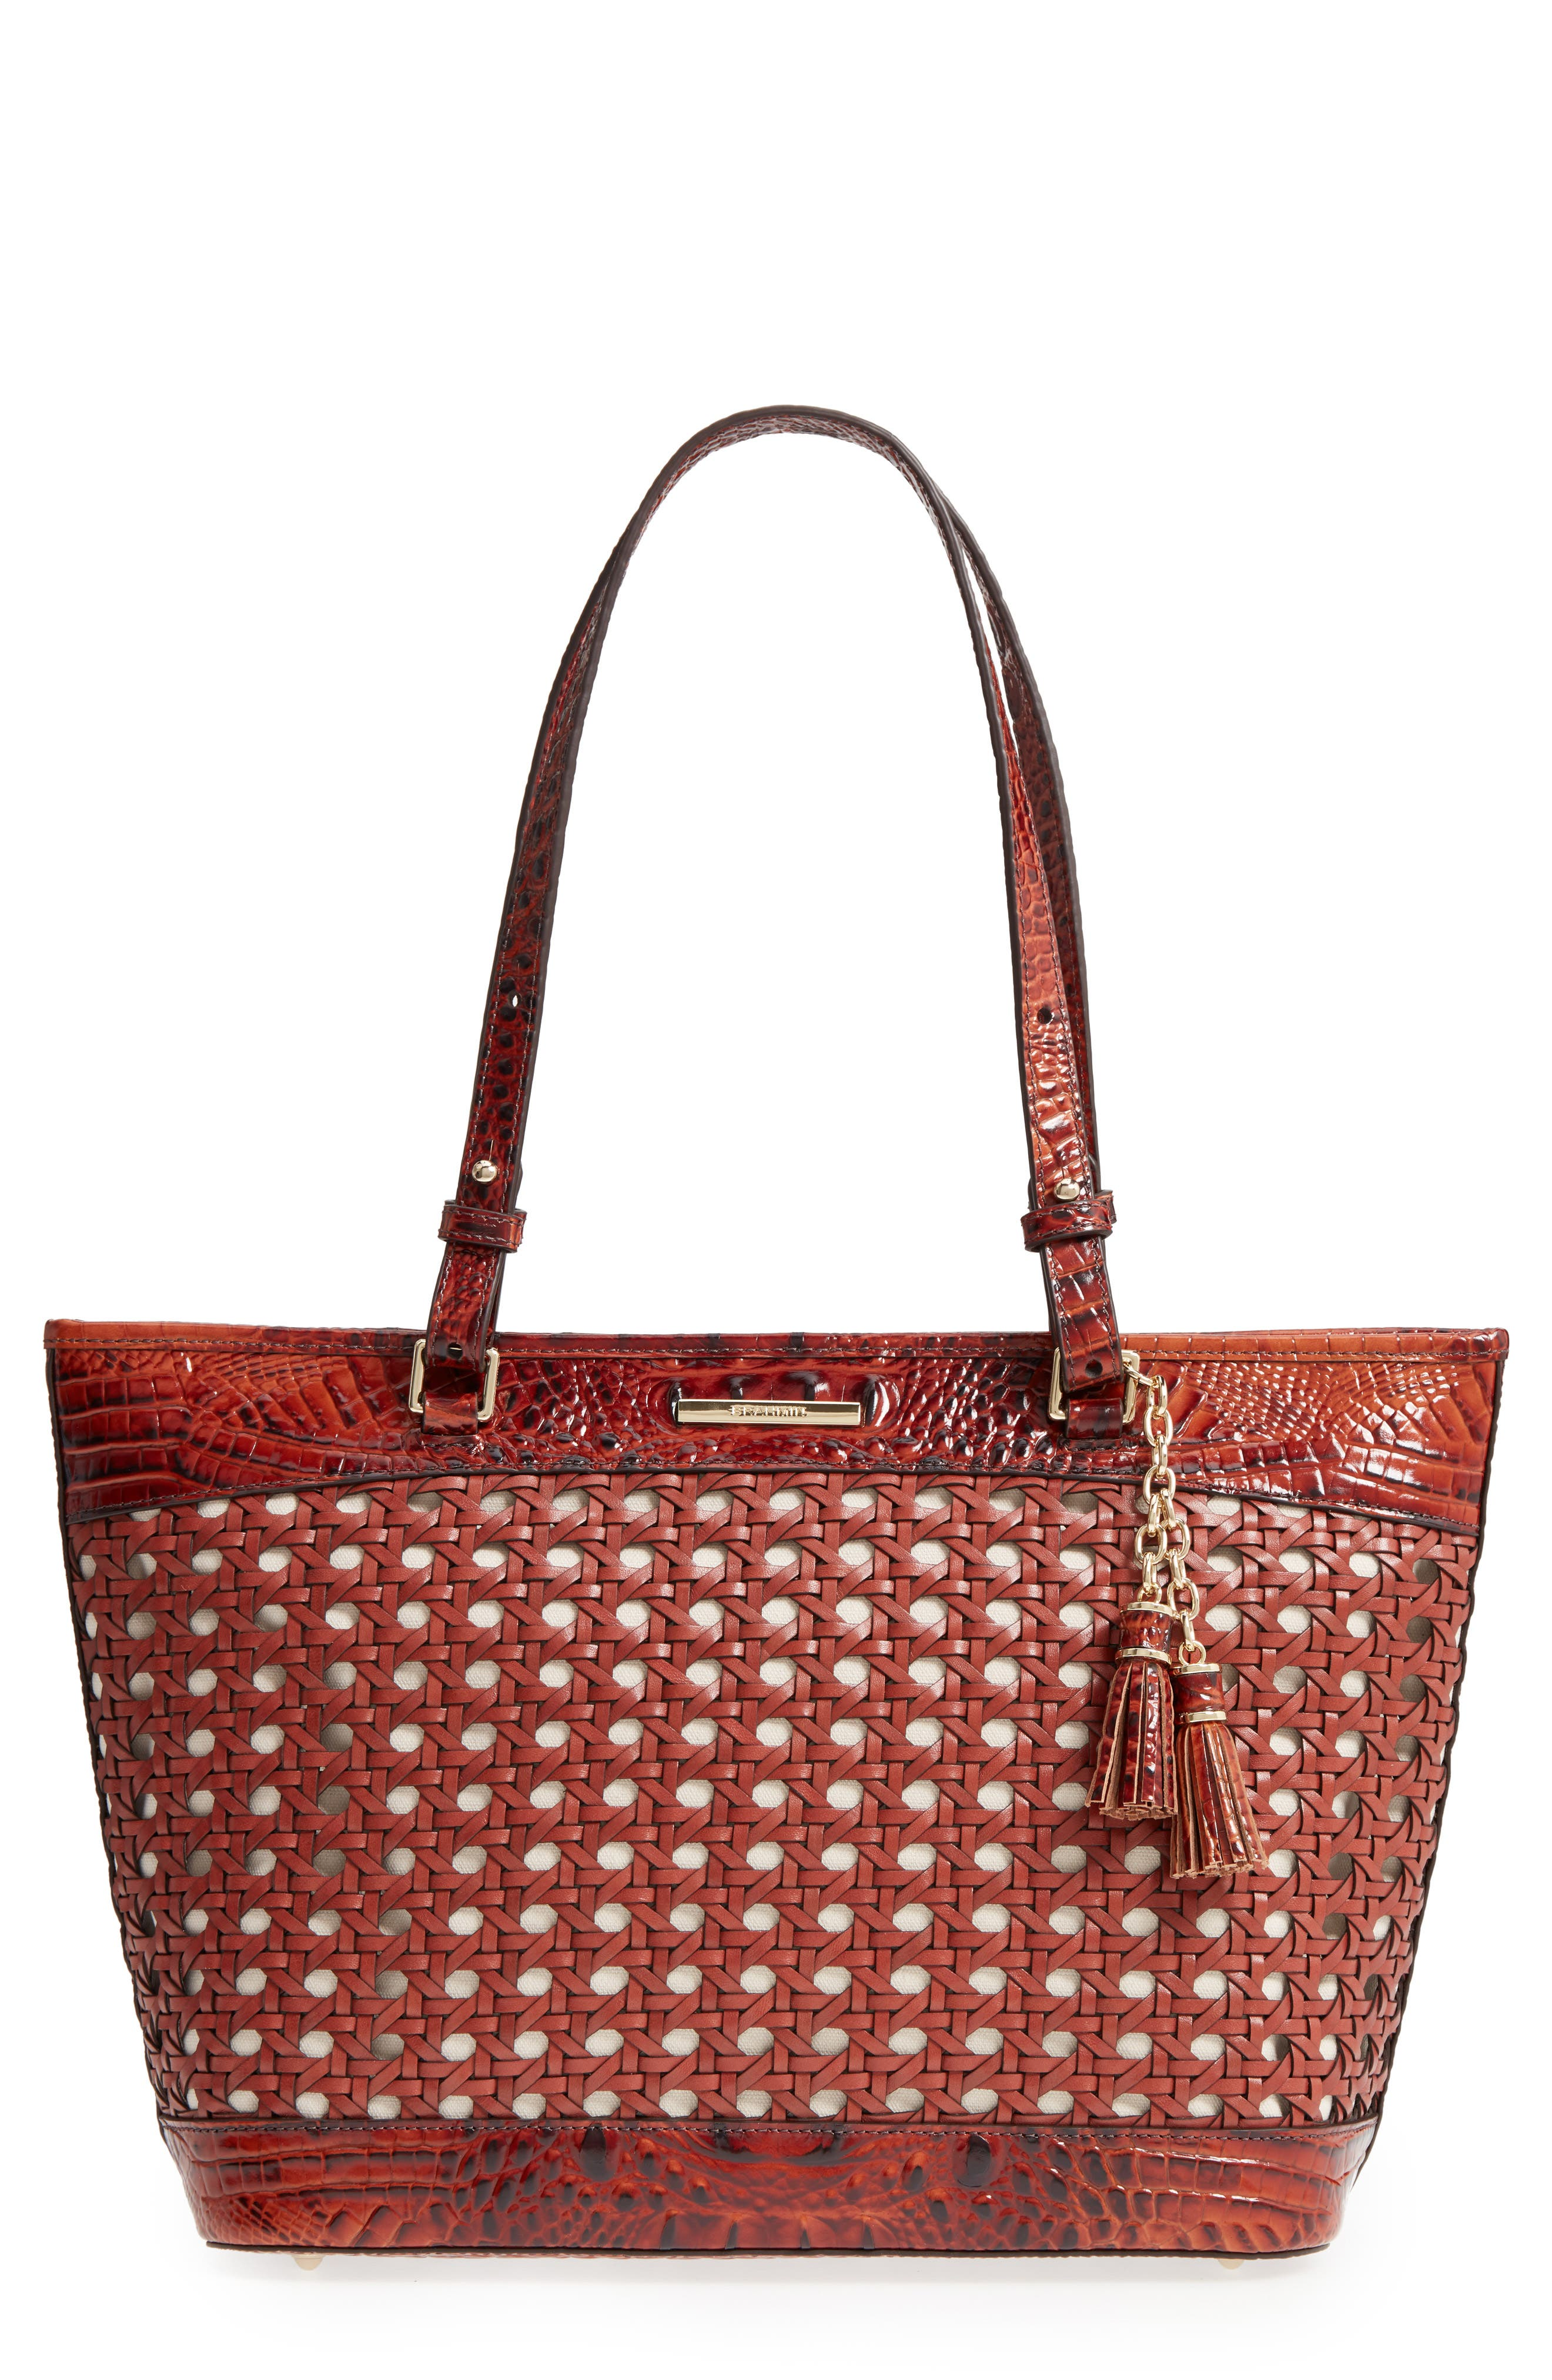 Medium Asher Leather Tote Bag,                         Main,                         color, PECAN